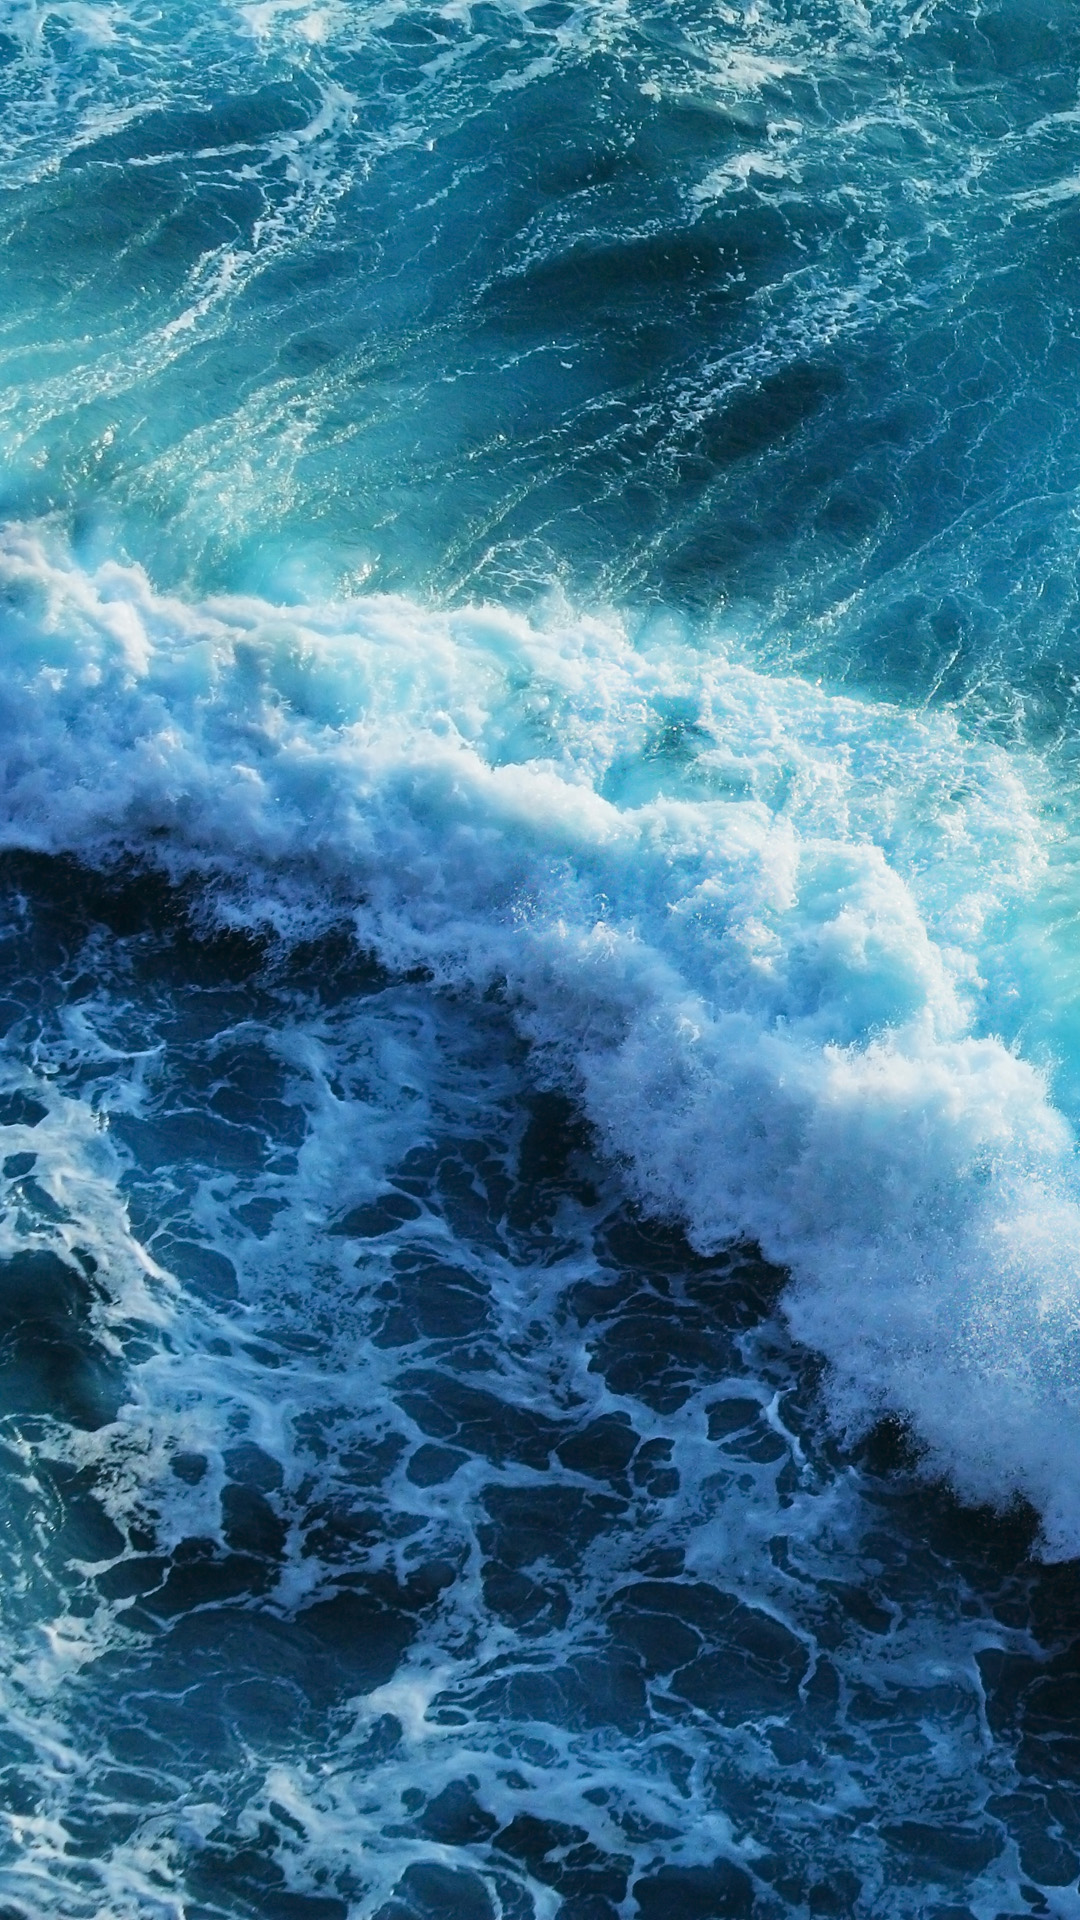 Beautiful blue waves